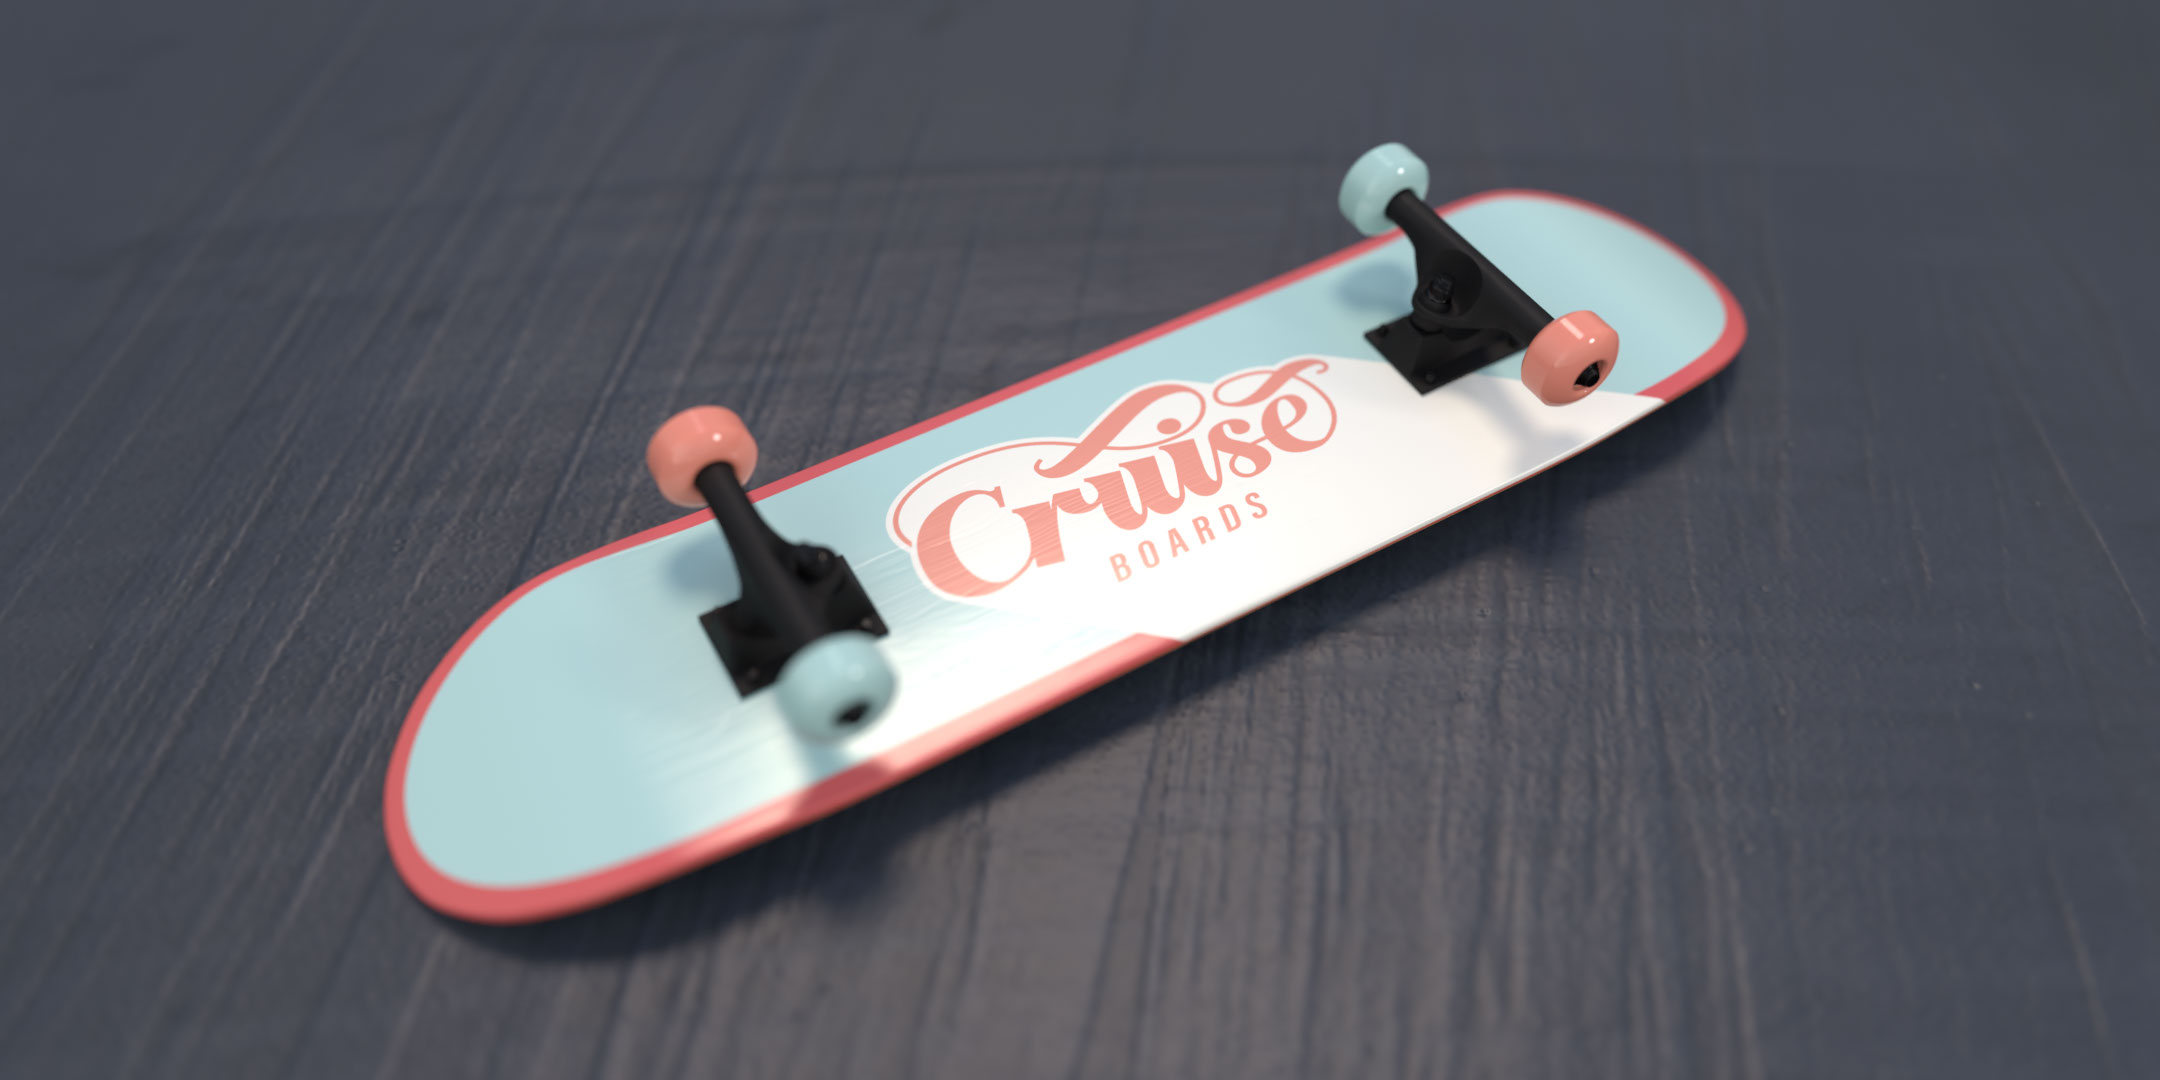 Cuise Boards skateboard viewed at an angle